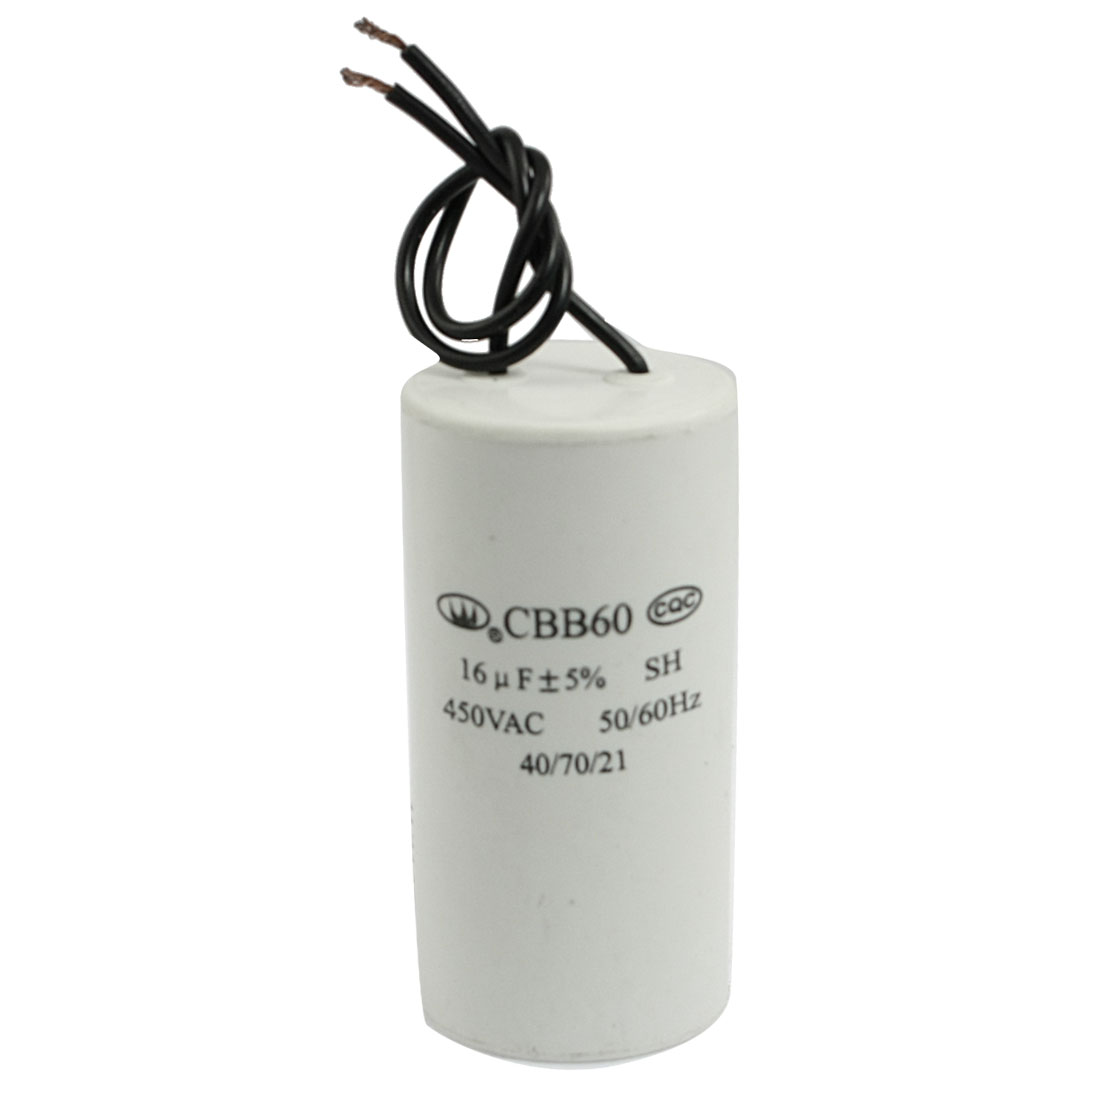 CBB60 16uF 450VAC 50/60Hz Round Shaped Polypropylene Film Motor Capacitor